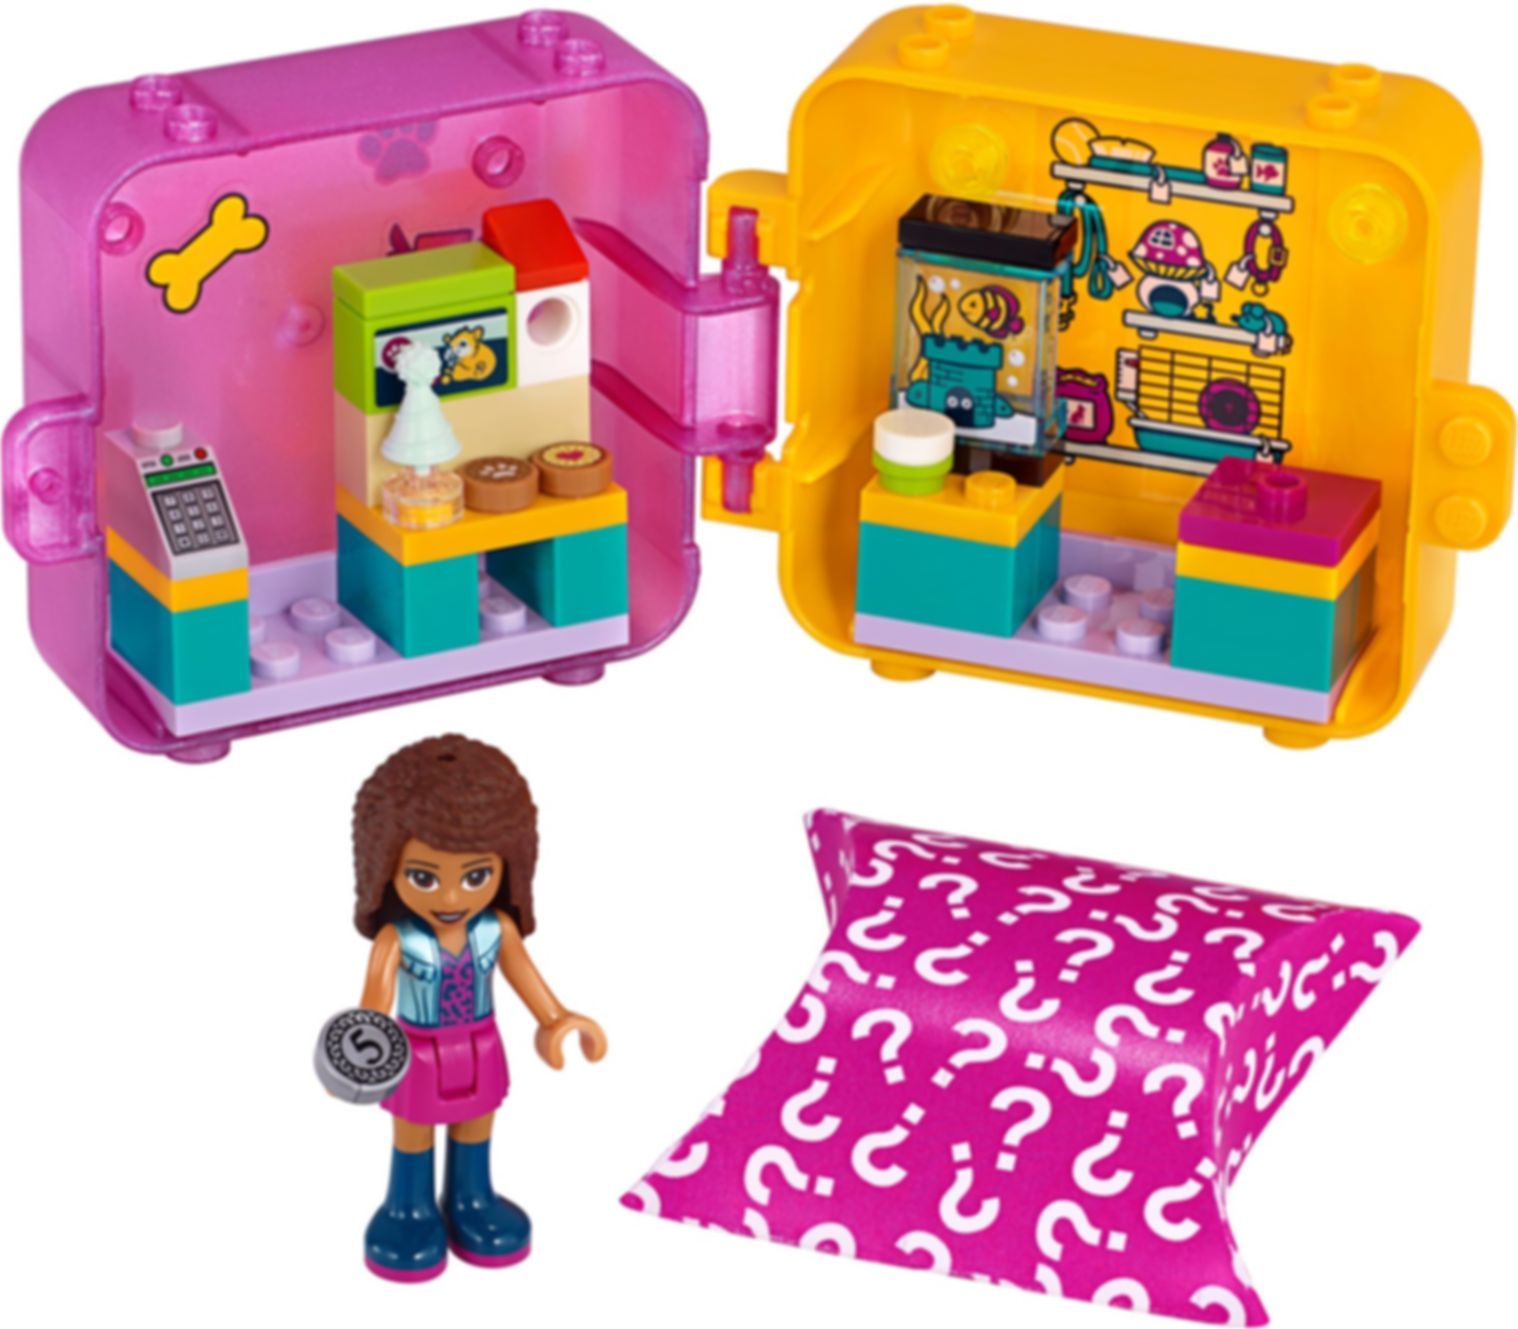 LEGO® Friends Andrea's Shopping Play Cube components